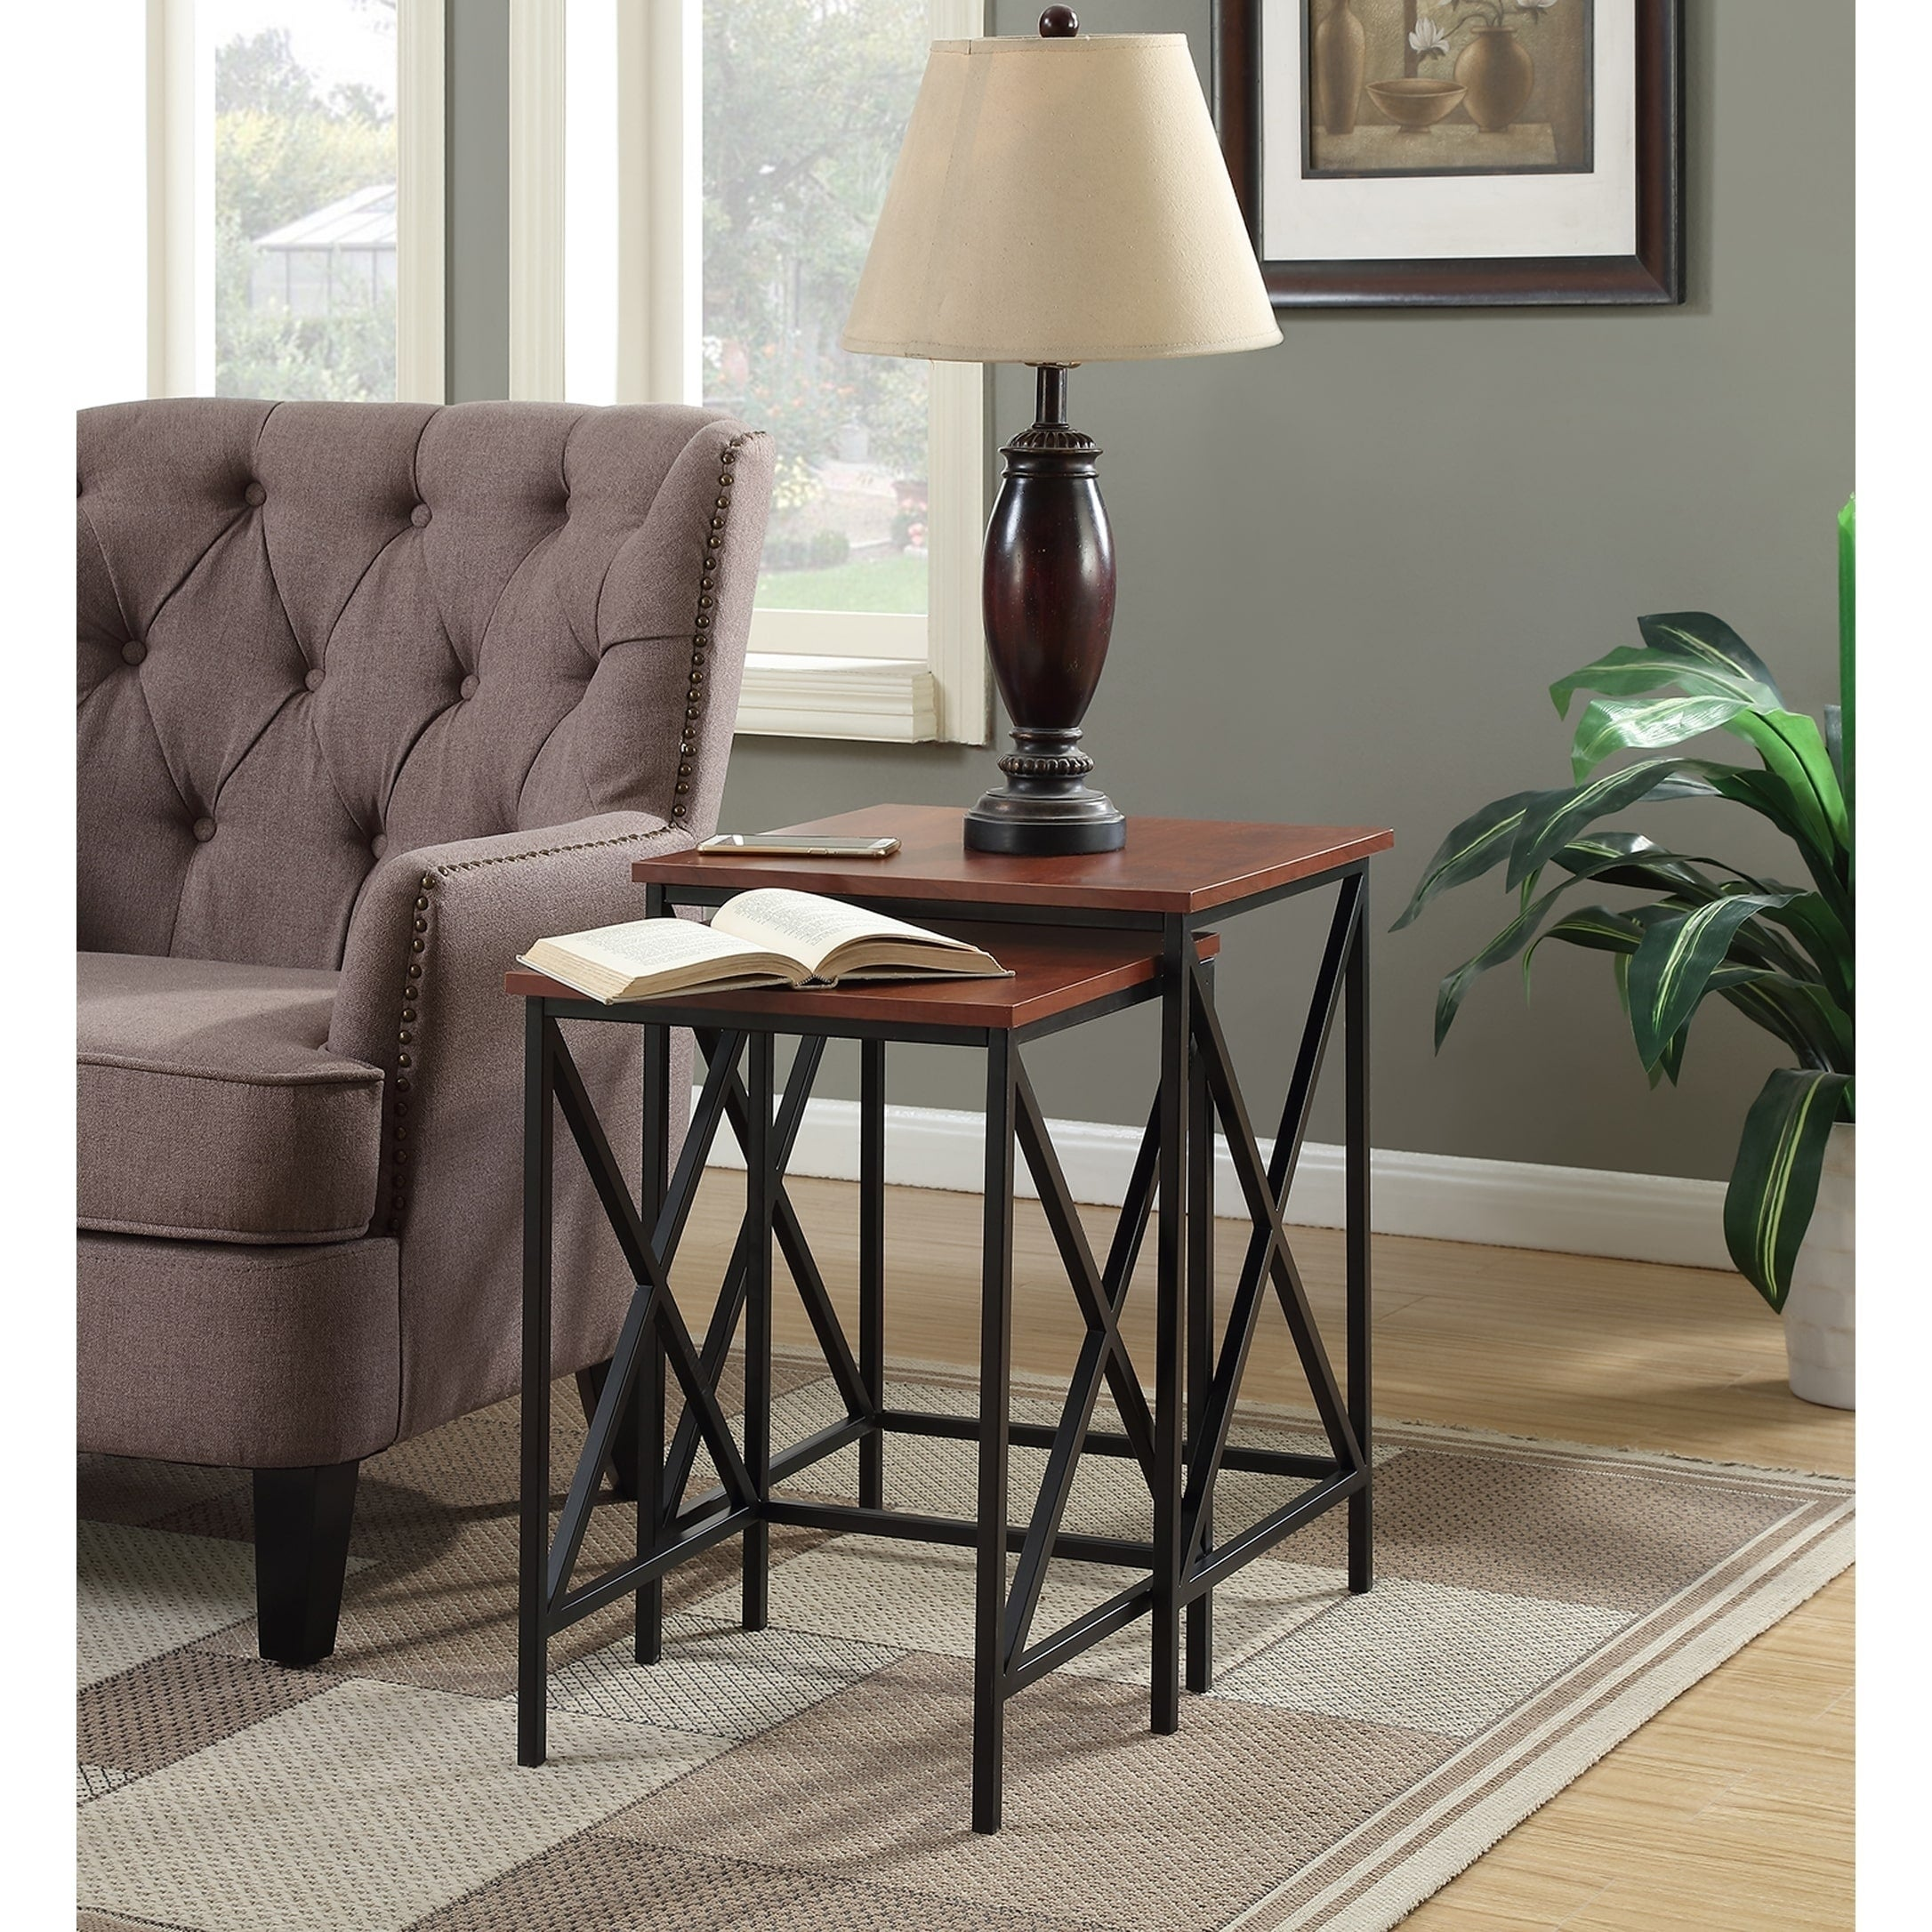 Convenience Concepts Tucson Brown Metal Nesting End Tables (Set of 2)